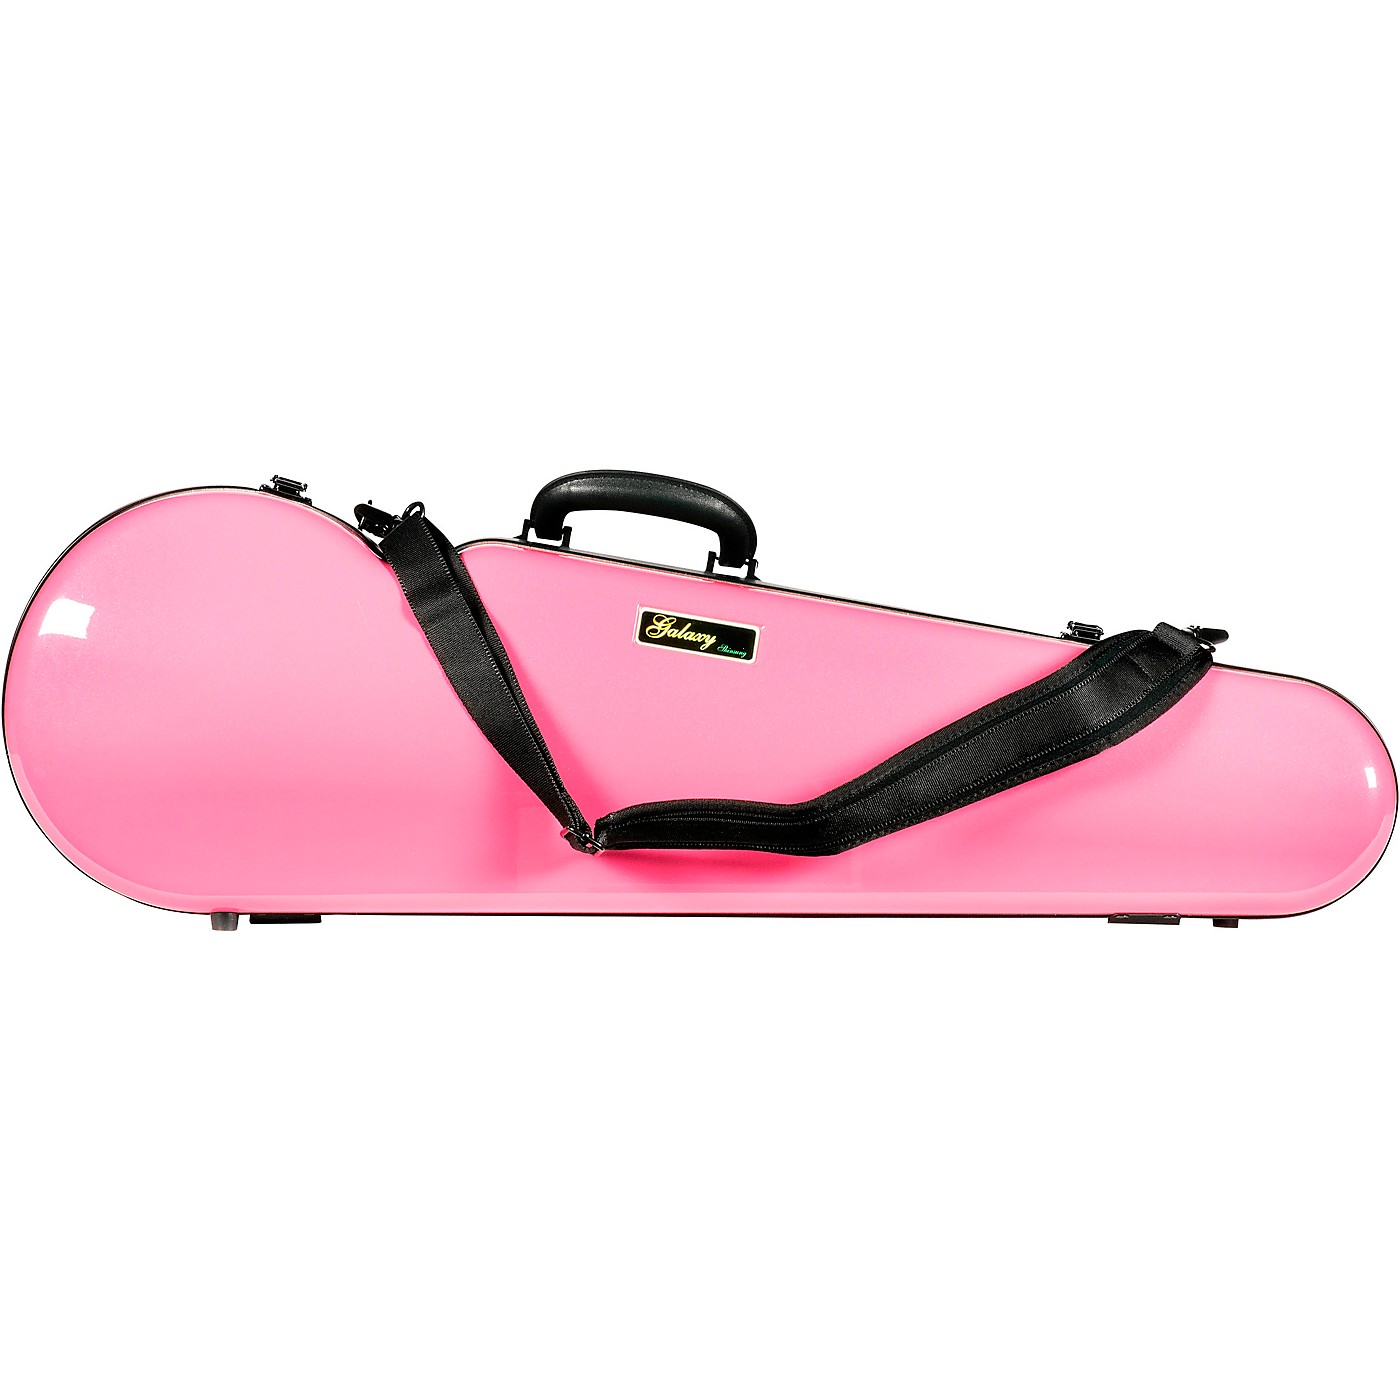 Galaxy Cases Comet 300SL Series Shaped ABS Violin Case thumbnail